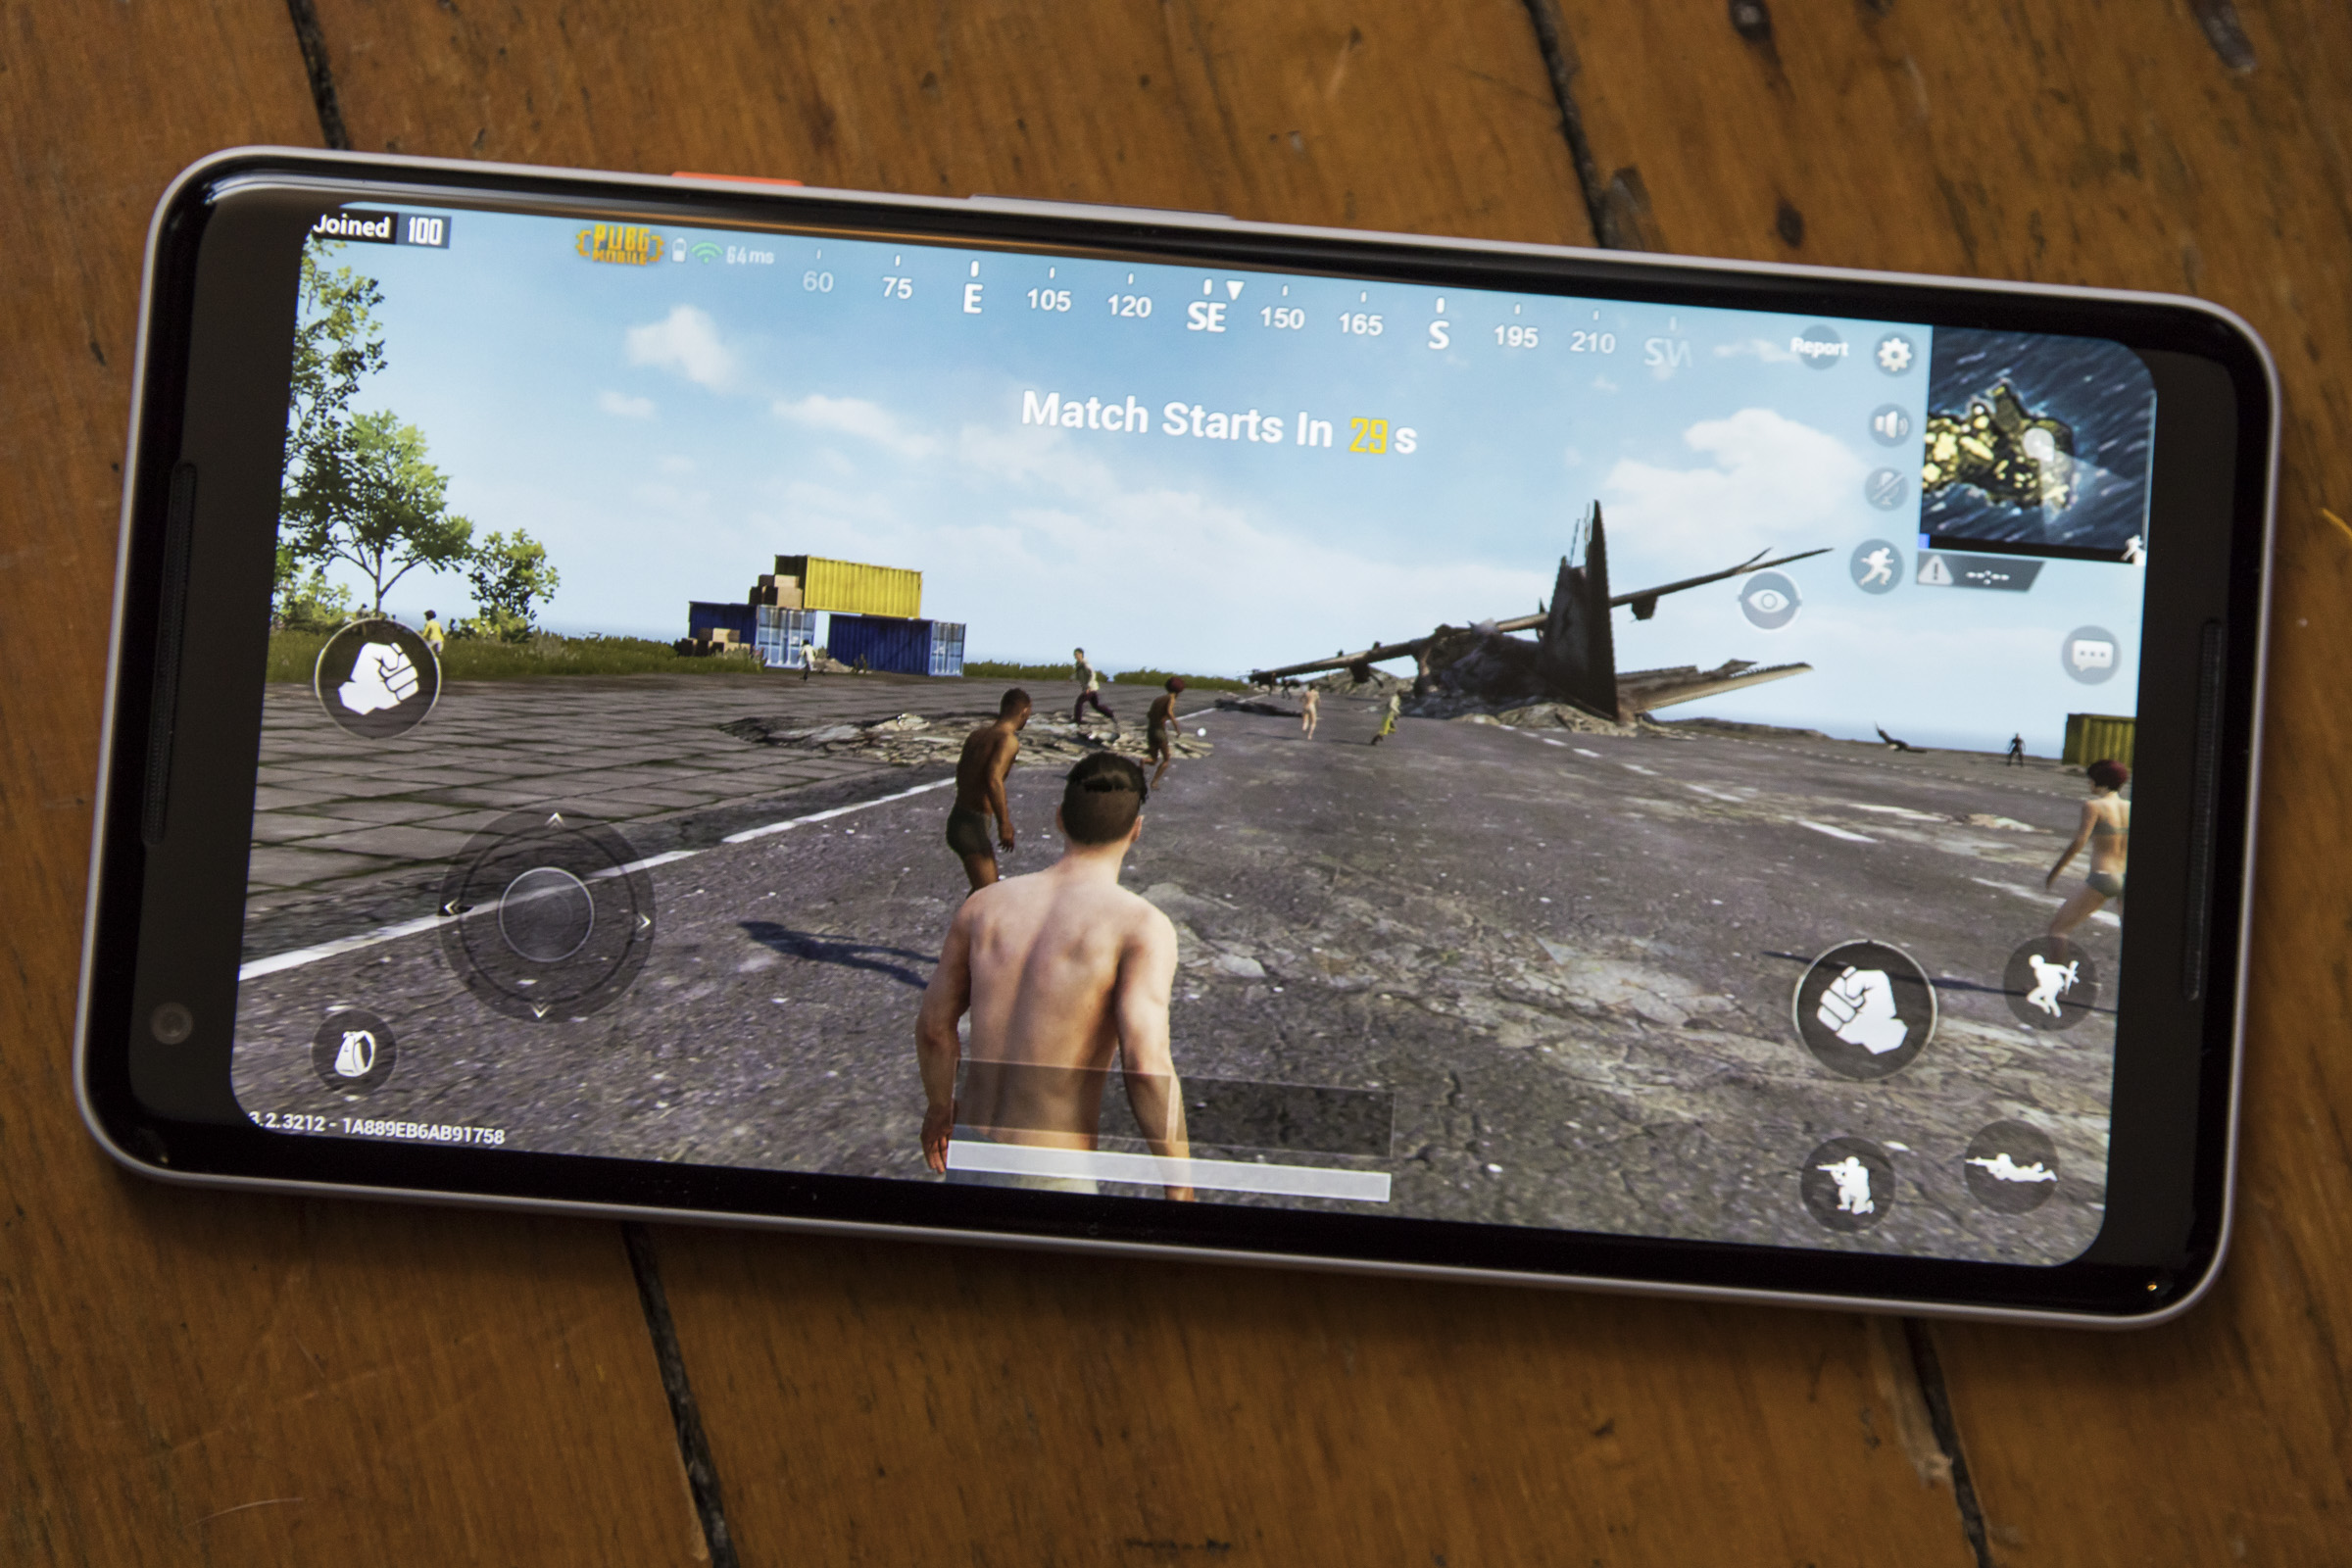 Pubg Soft Launches On Mobile In Canada With Android Release Techcrunch